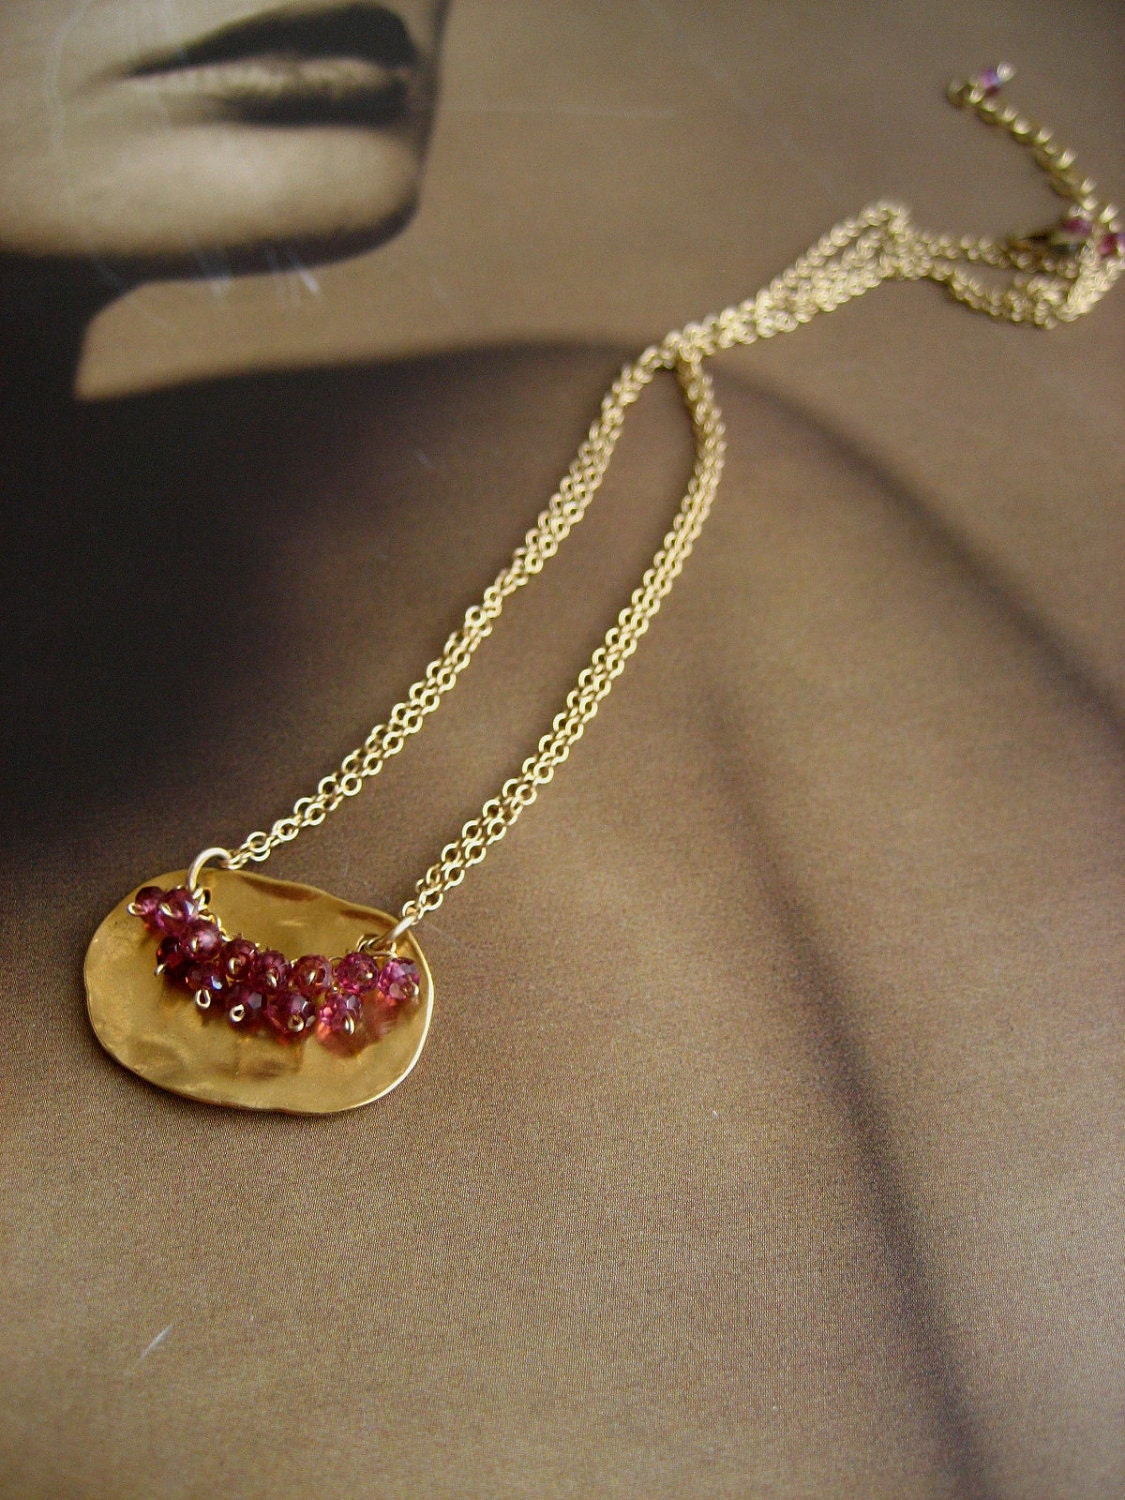 Vermeil and rhodolite organic plaque necklace - solid sterling silver pendant with 14k gold plating - ElfiRoose